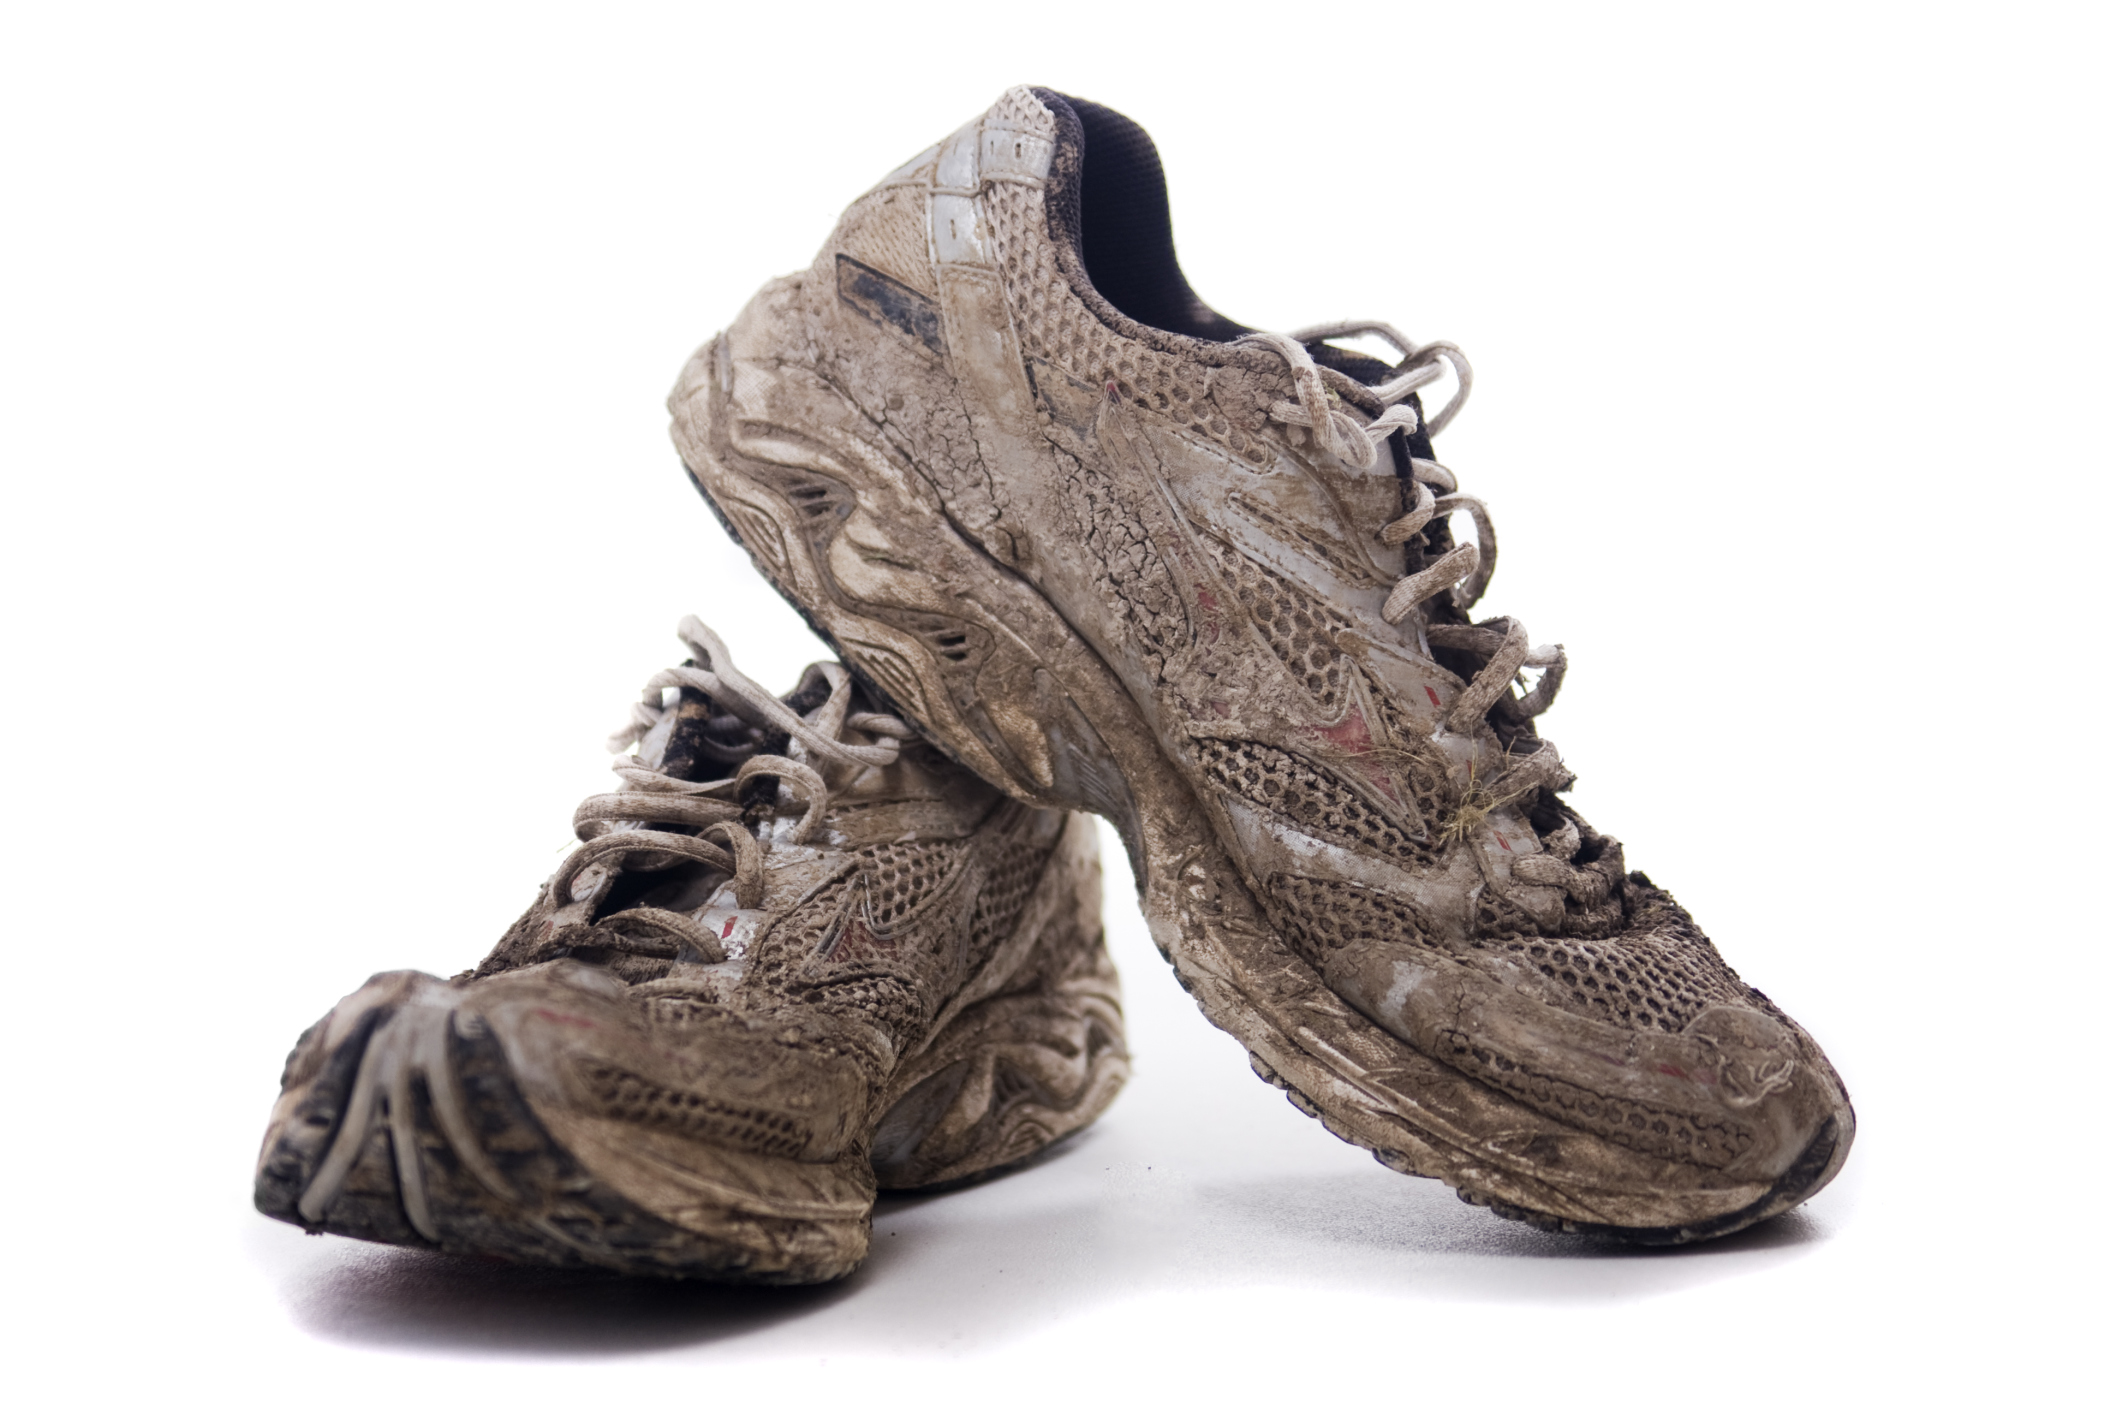 Muddy sport shoes photo